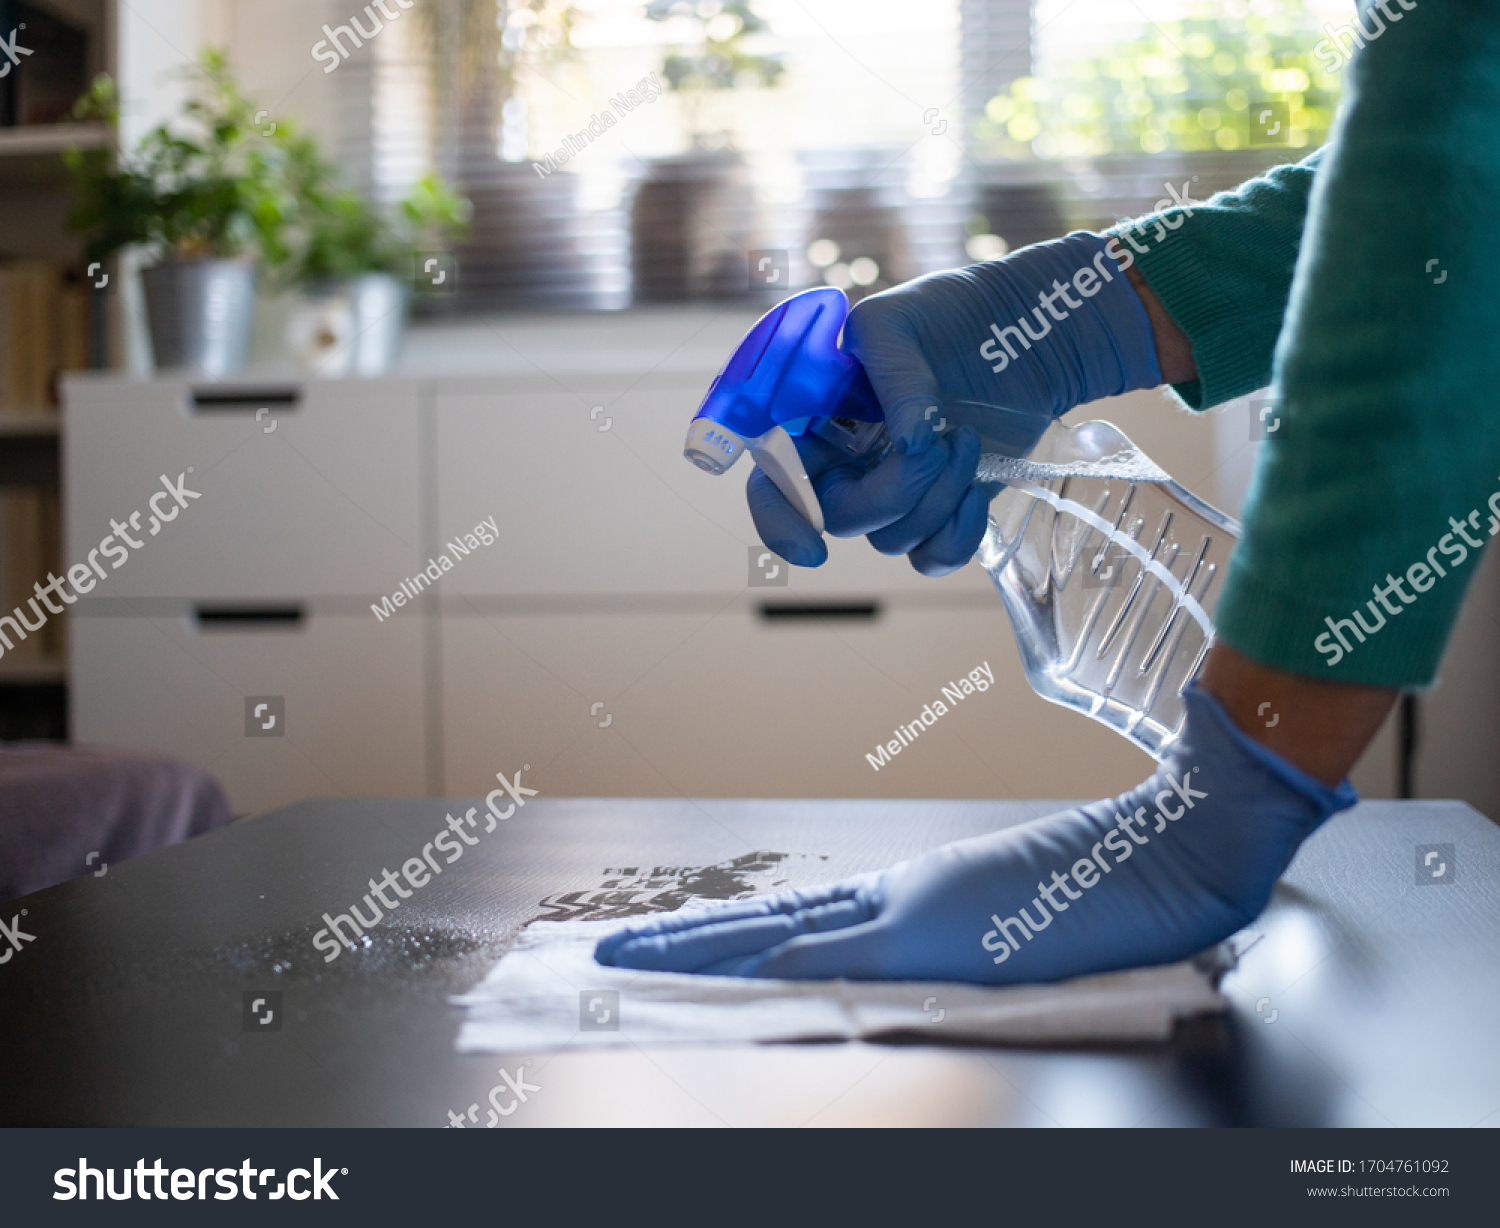 surface home cleaning spraying antibacterial sanitizing spray bottle disinfecting against COVID-19 spreading wearing medical blue gloves. Sanitize surfaces prevention in hospitals and public spaces. #1704761092